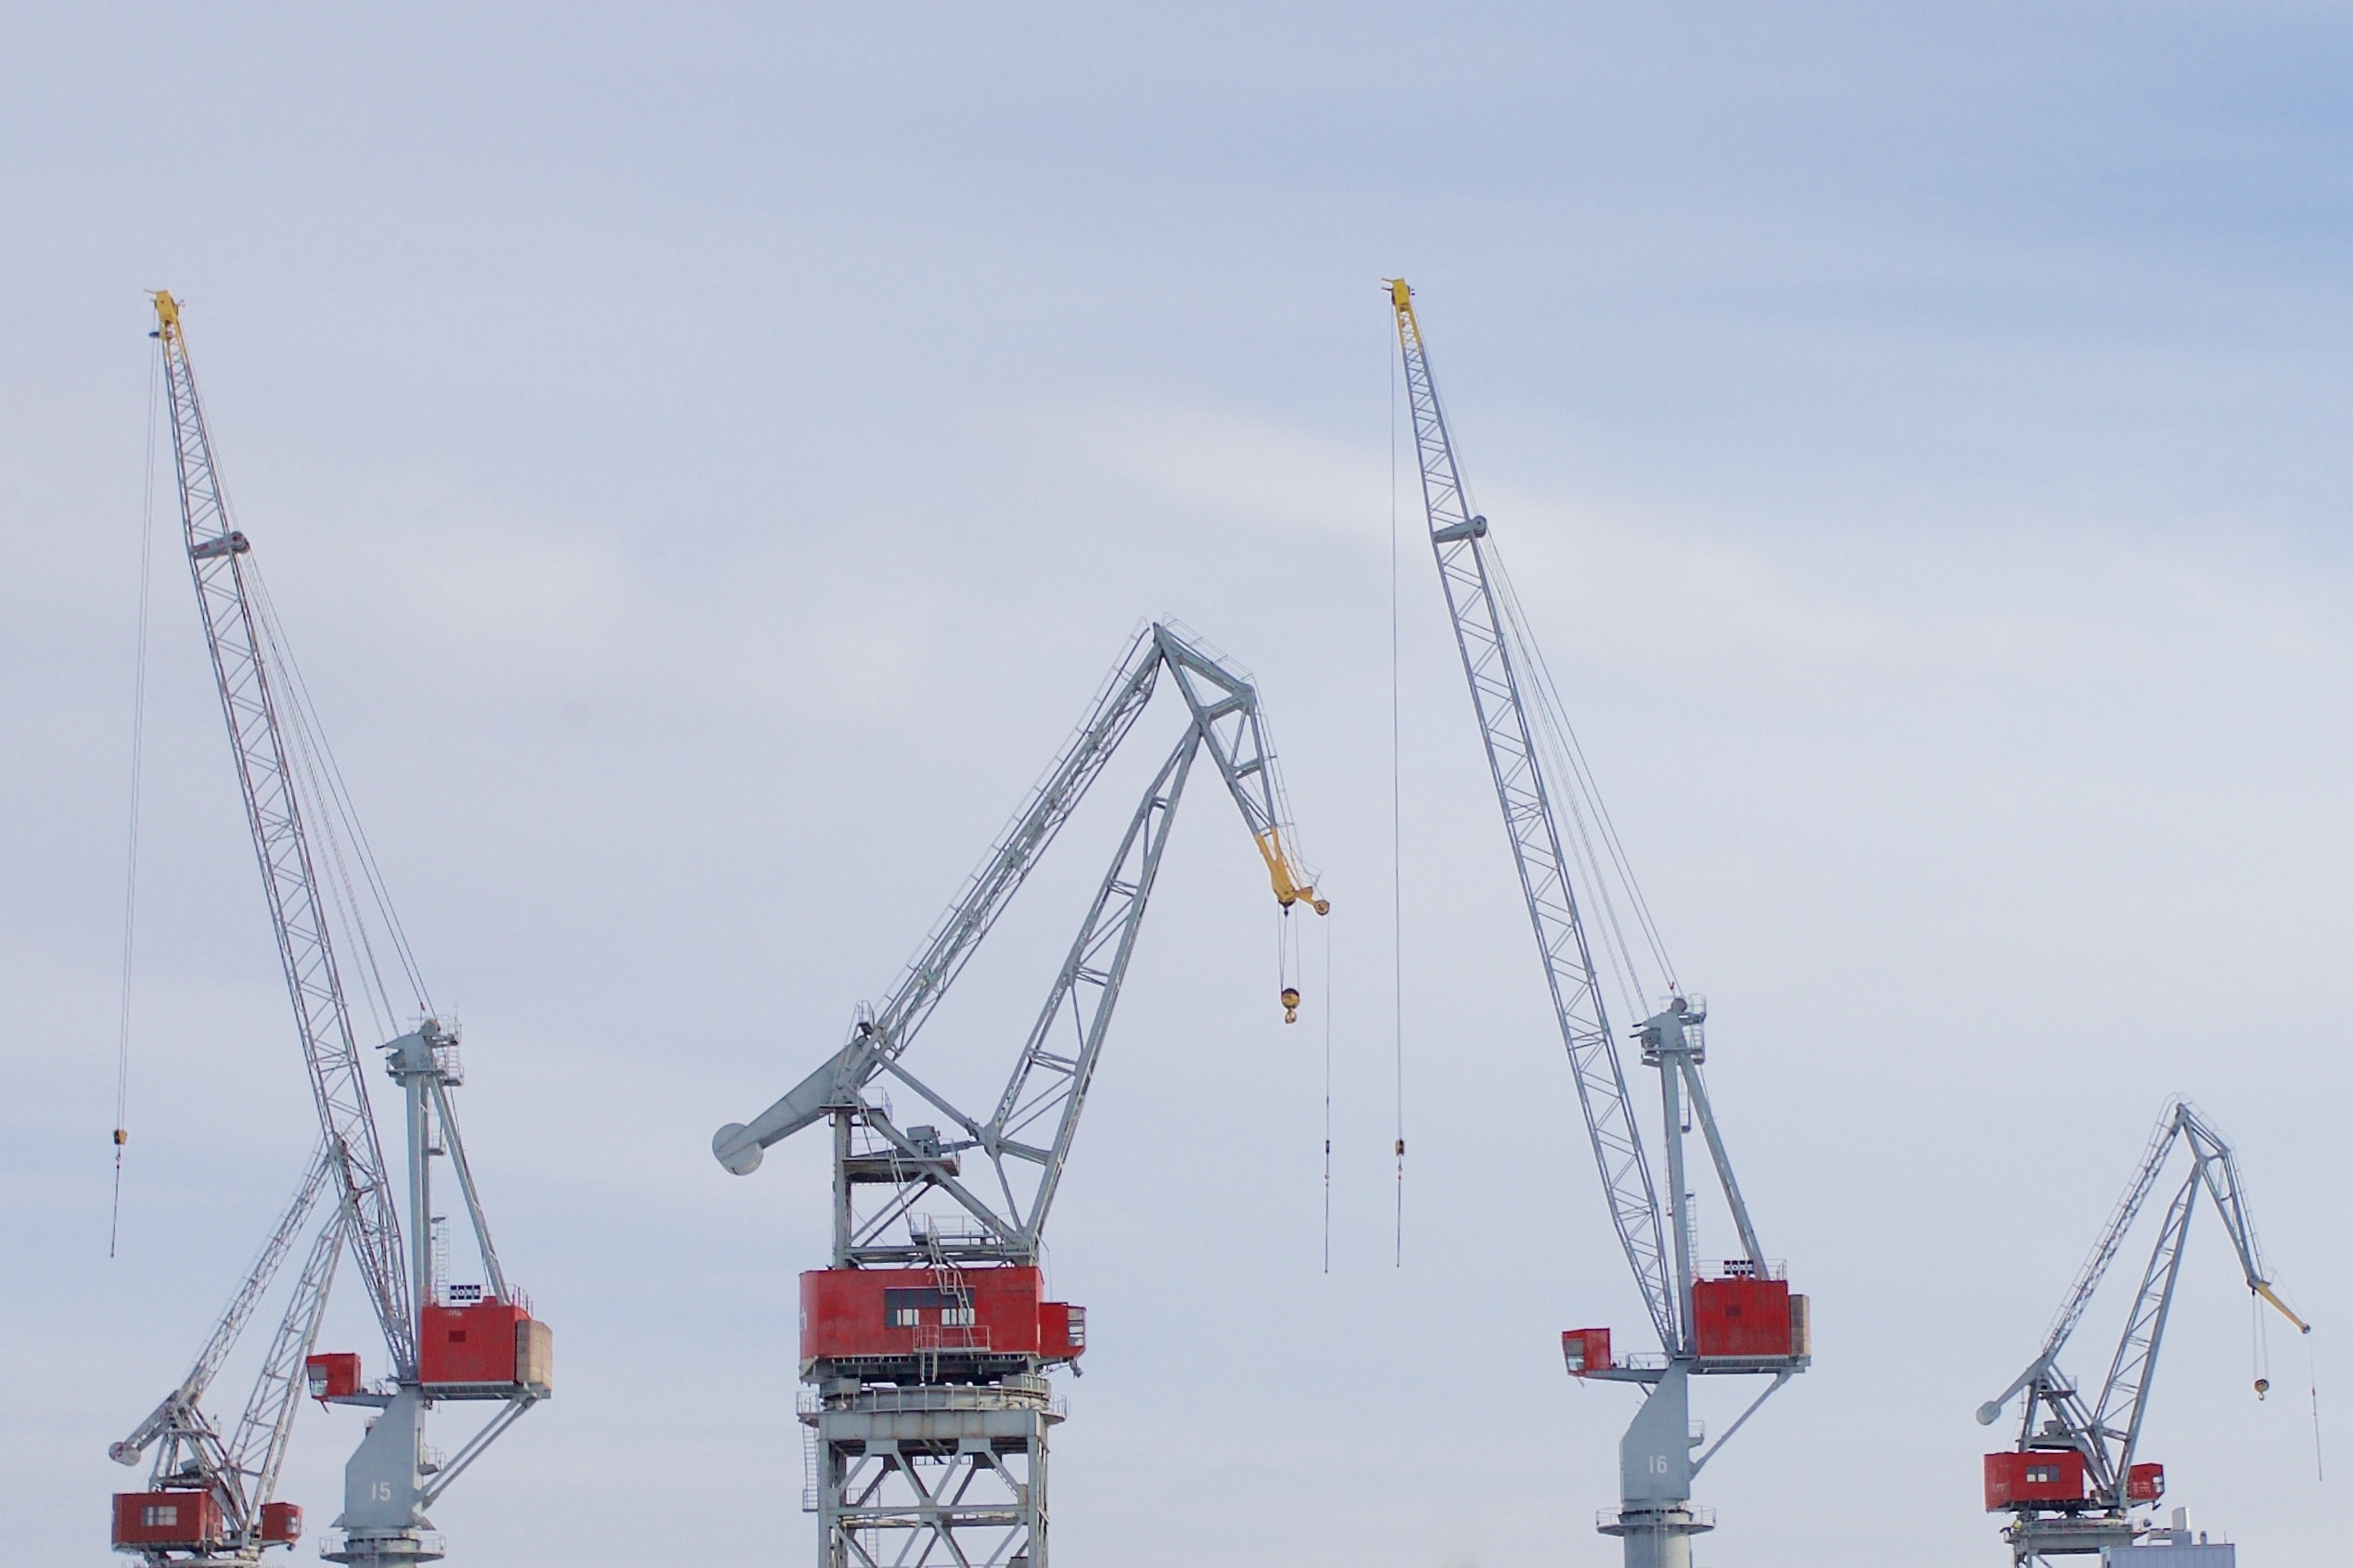 timelapse photography of red crane collage